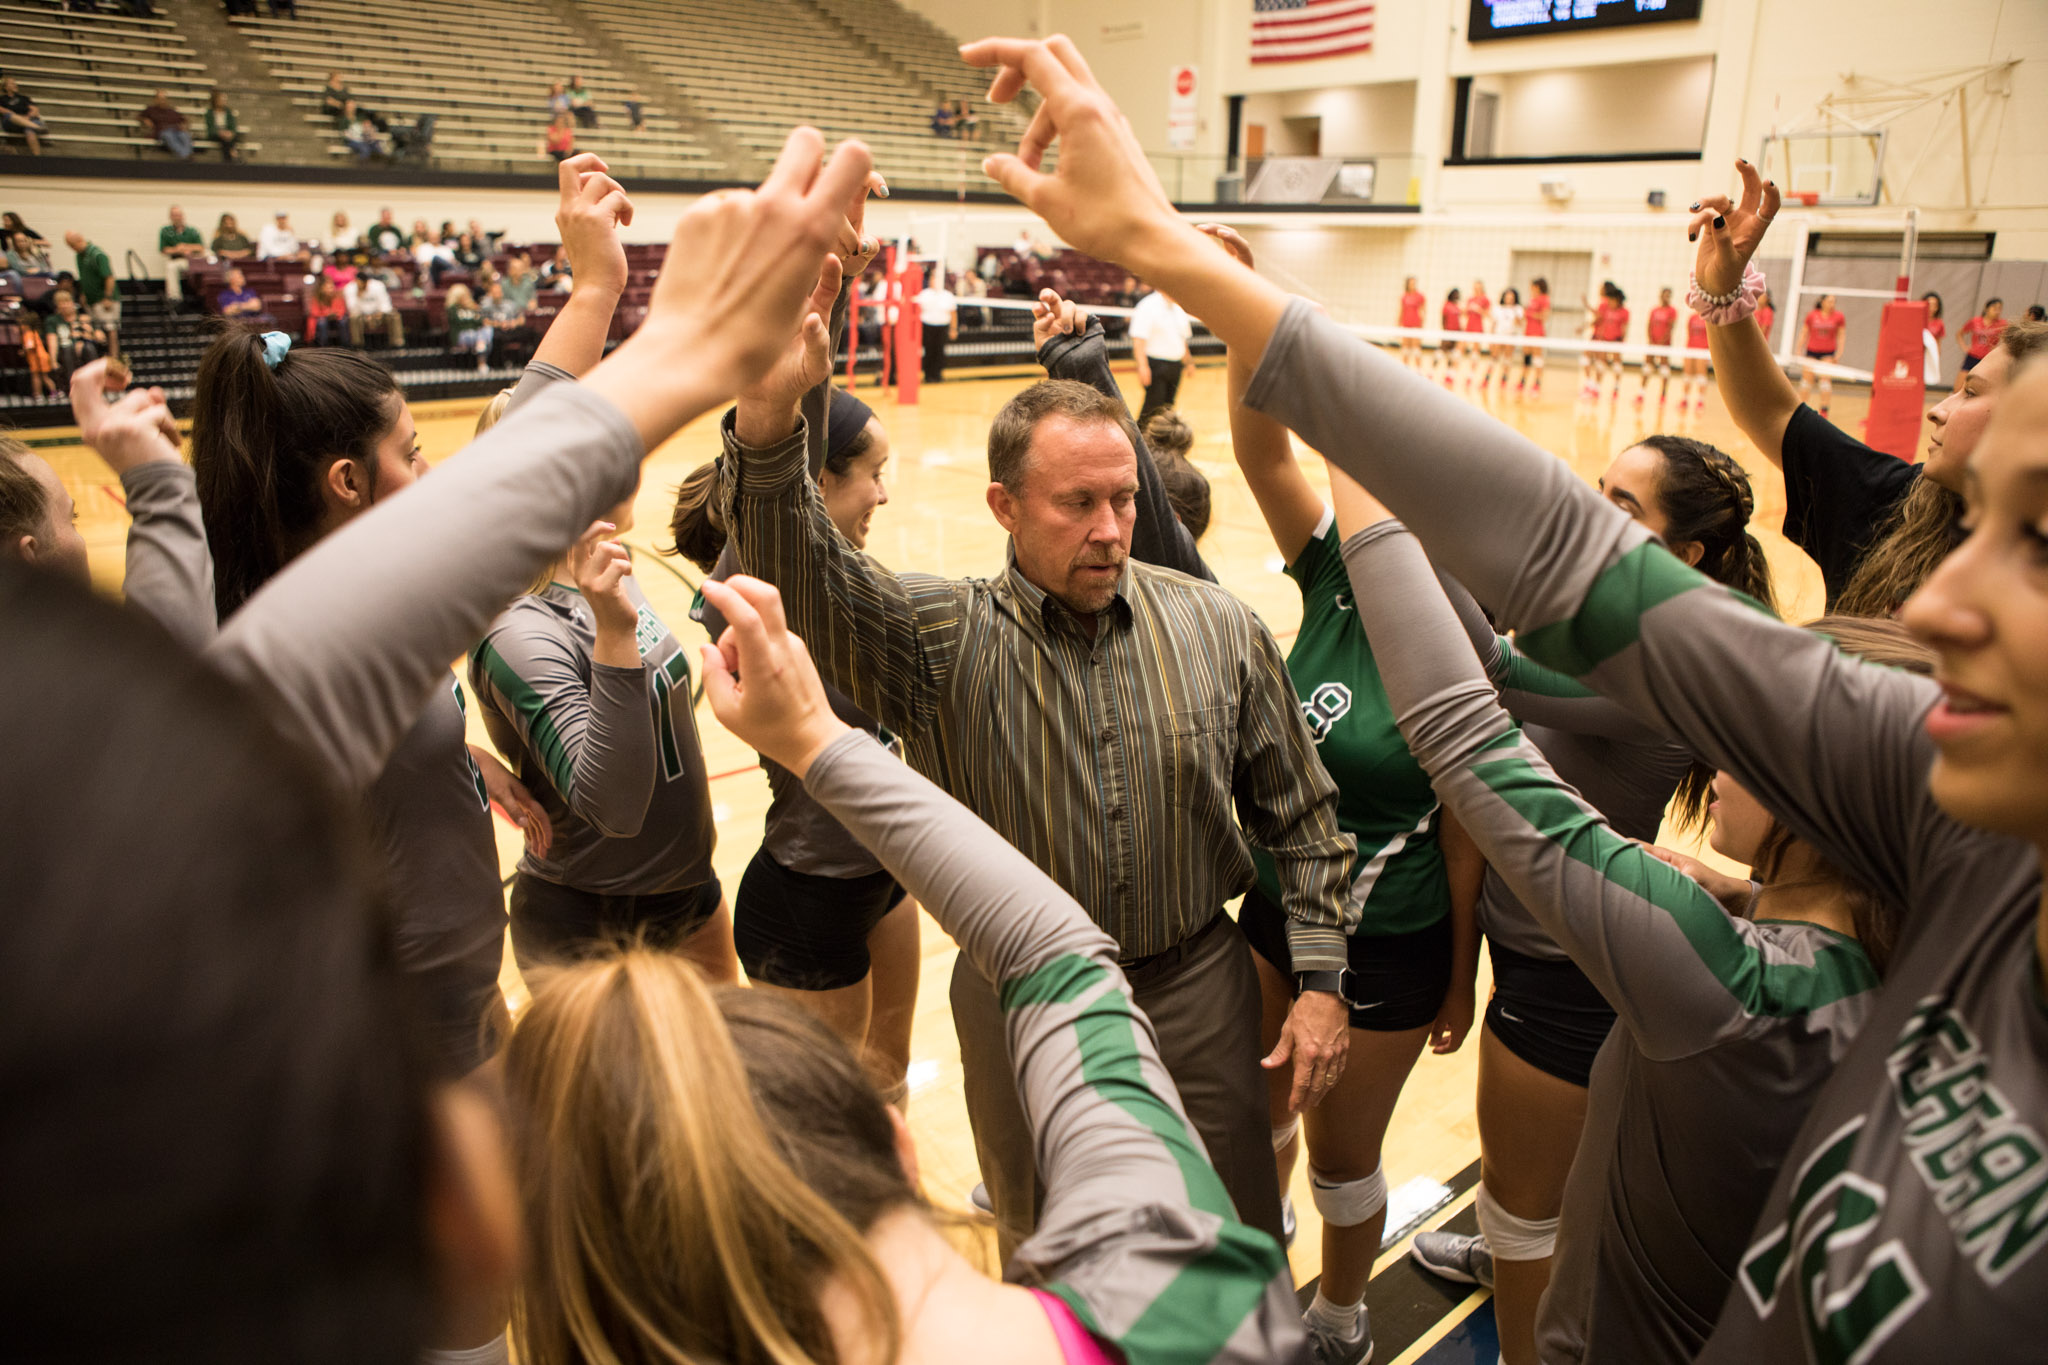 Ronald Reagan High School Volleyball Coach Mike Carter brings the Reagan Rattlers into a huddle before the match.